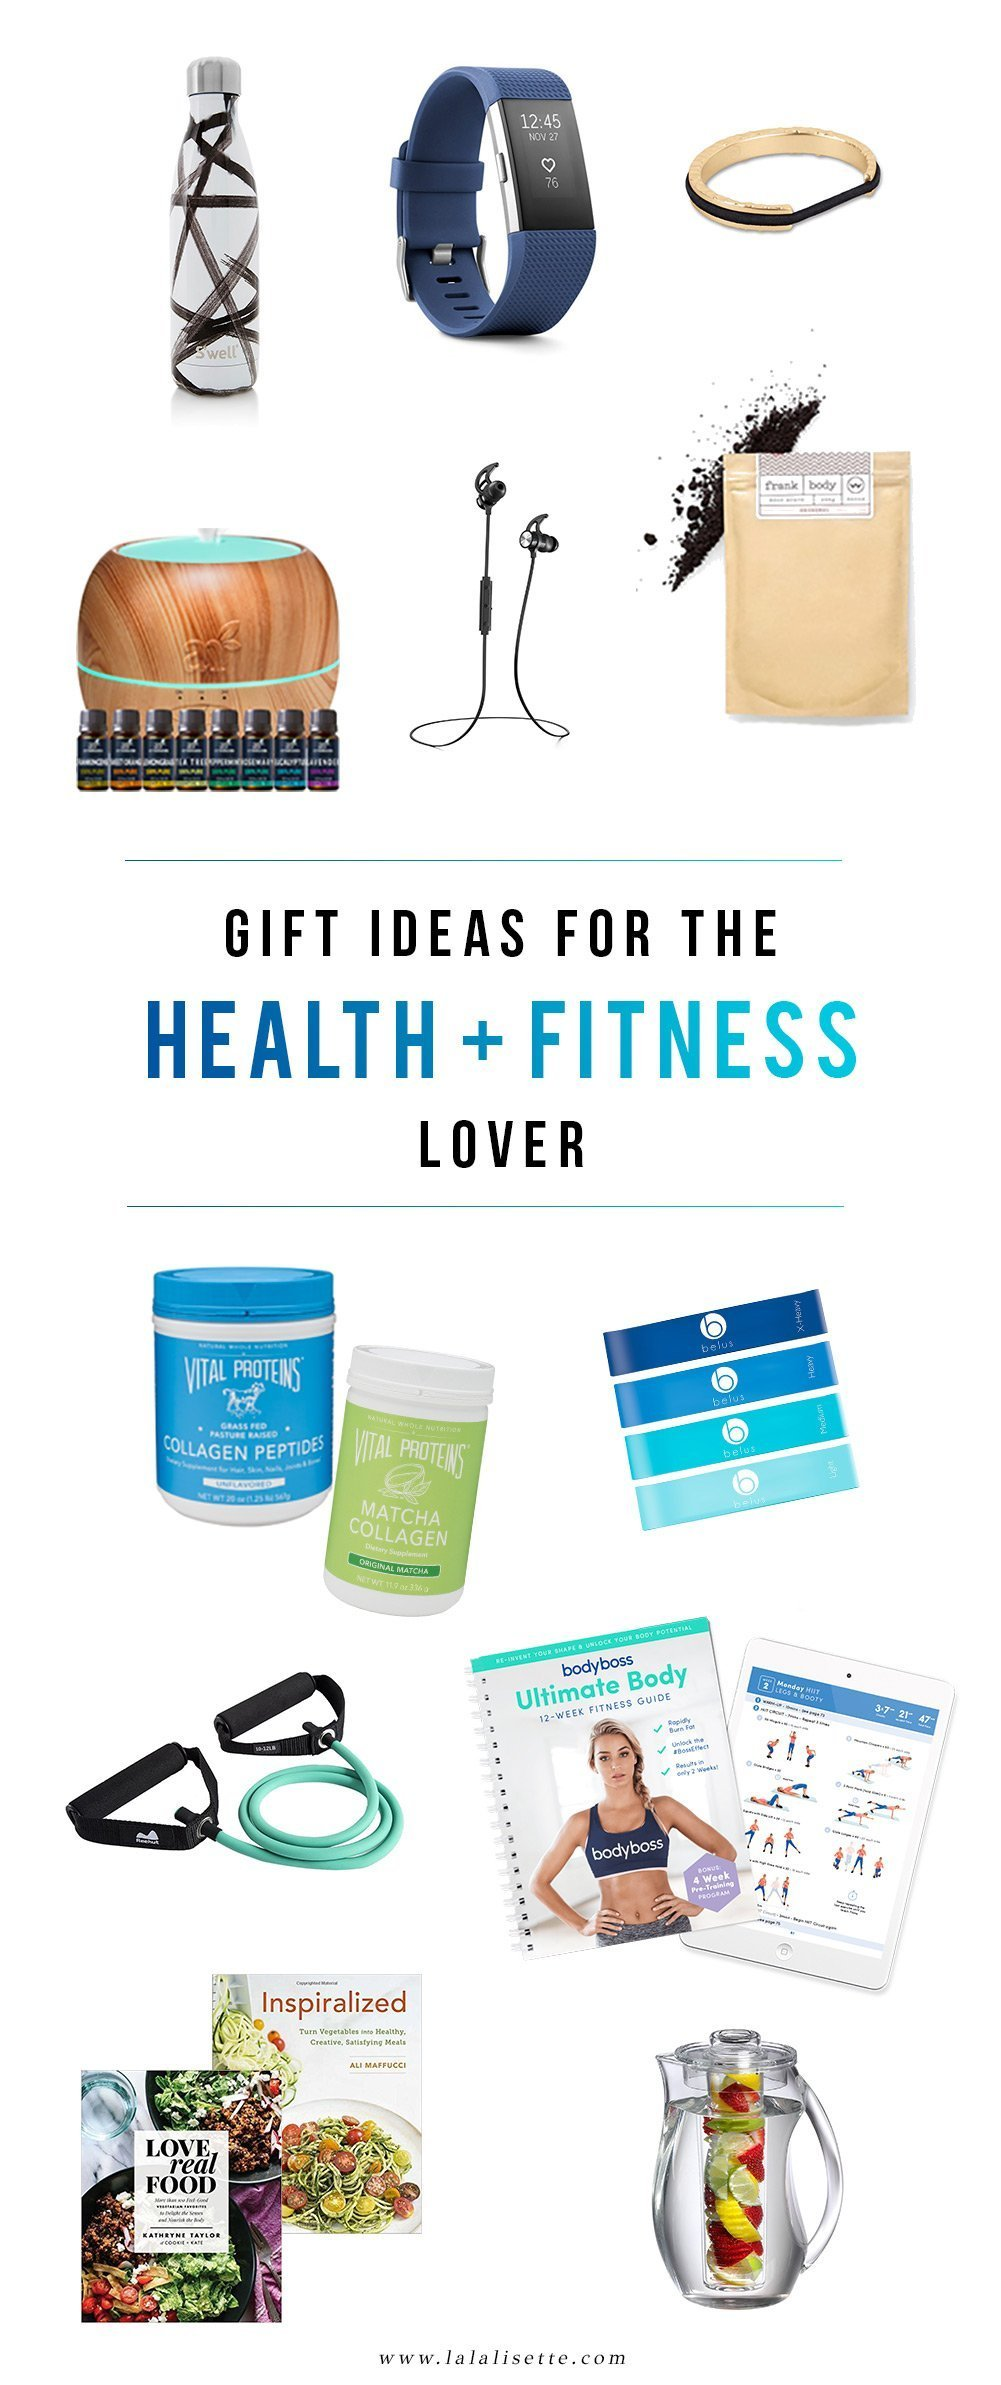 Here are a few gift ideas for the health and #fitness lover in your life. The one who loves exercise, healthy eating, meditating, and self-care. #giftideas #fitnessgifts